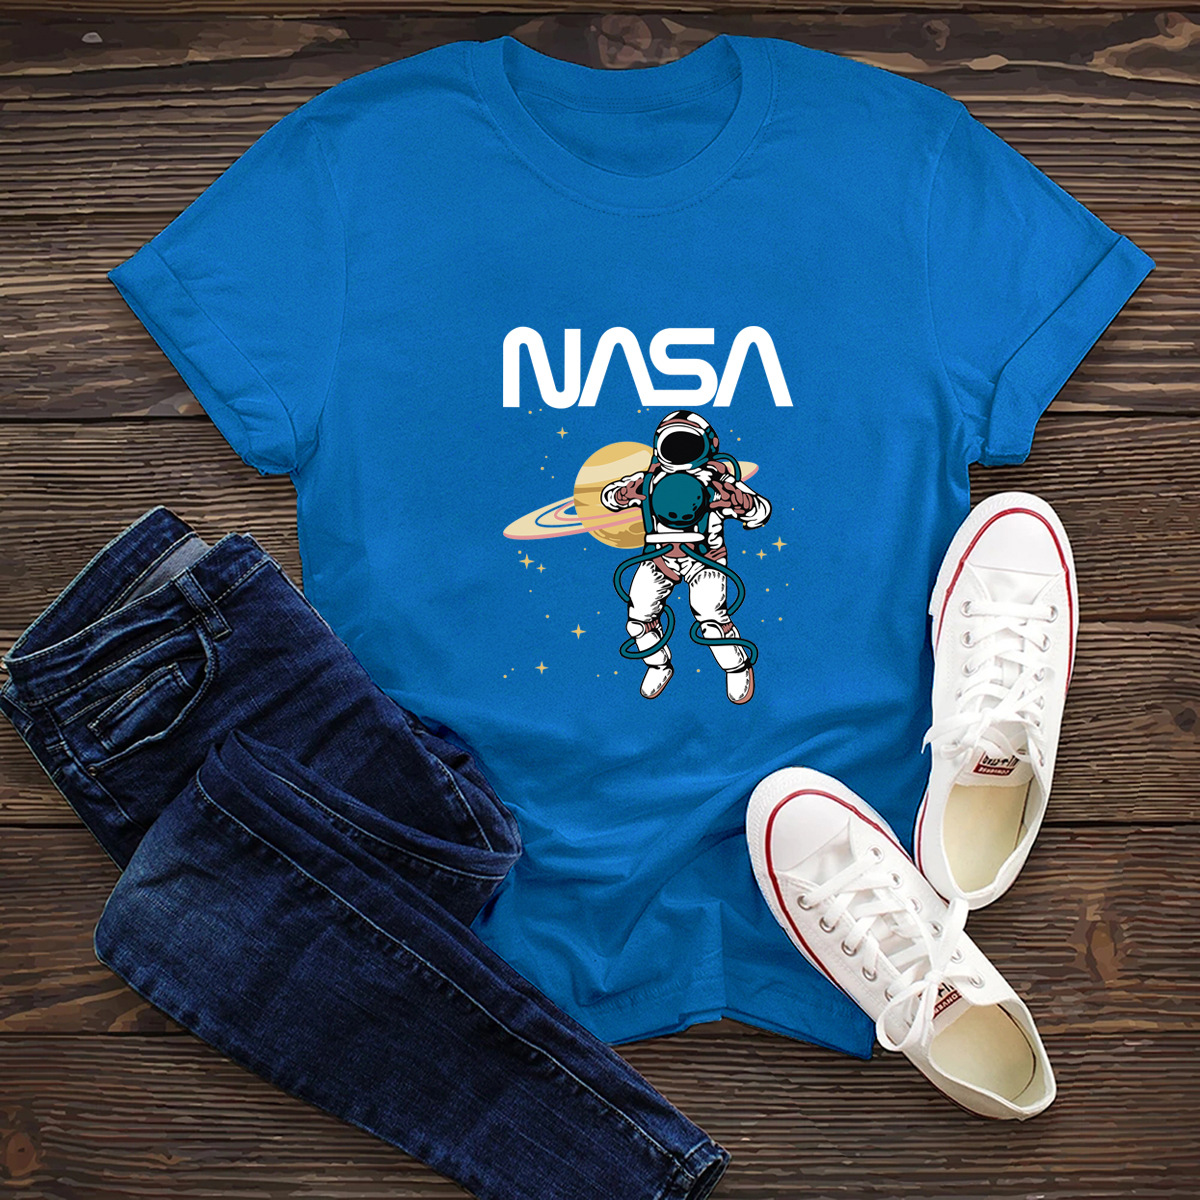 comfortable short-sleeved T-shirt dark nasa space series NSSN1448